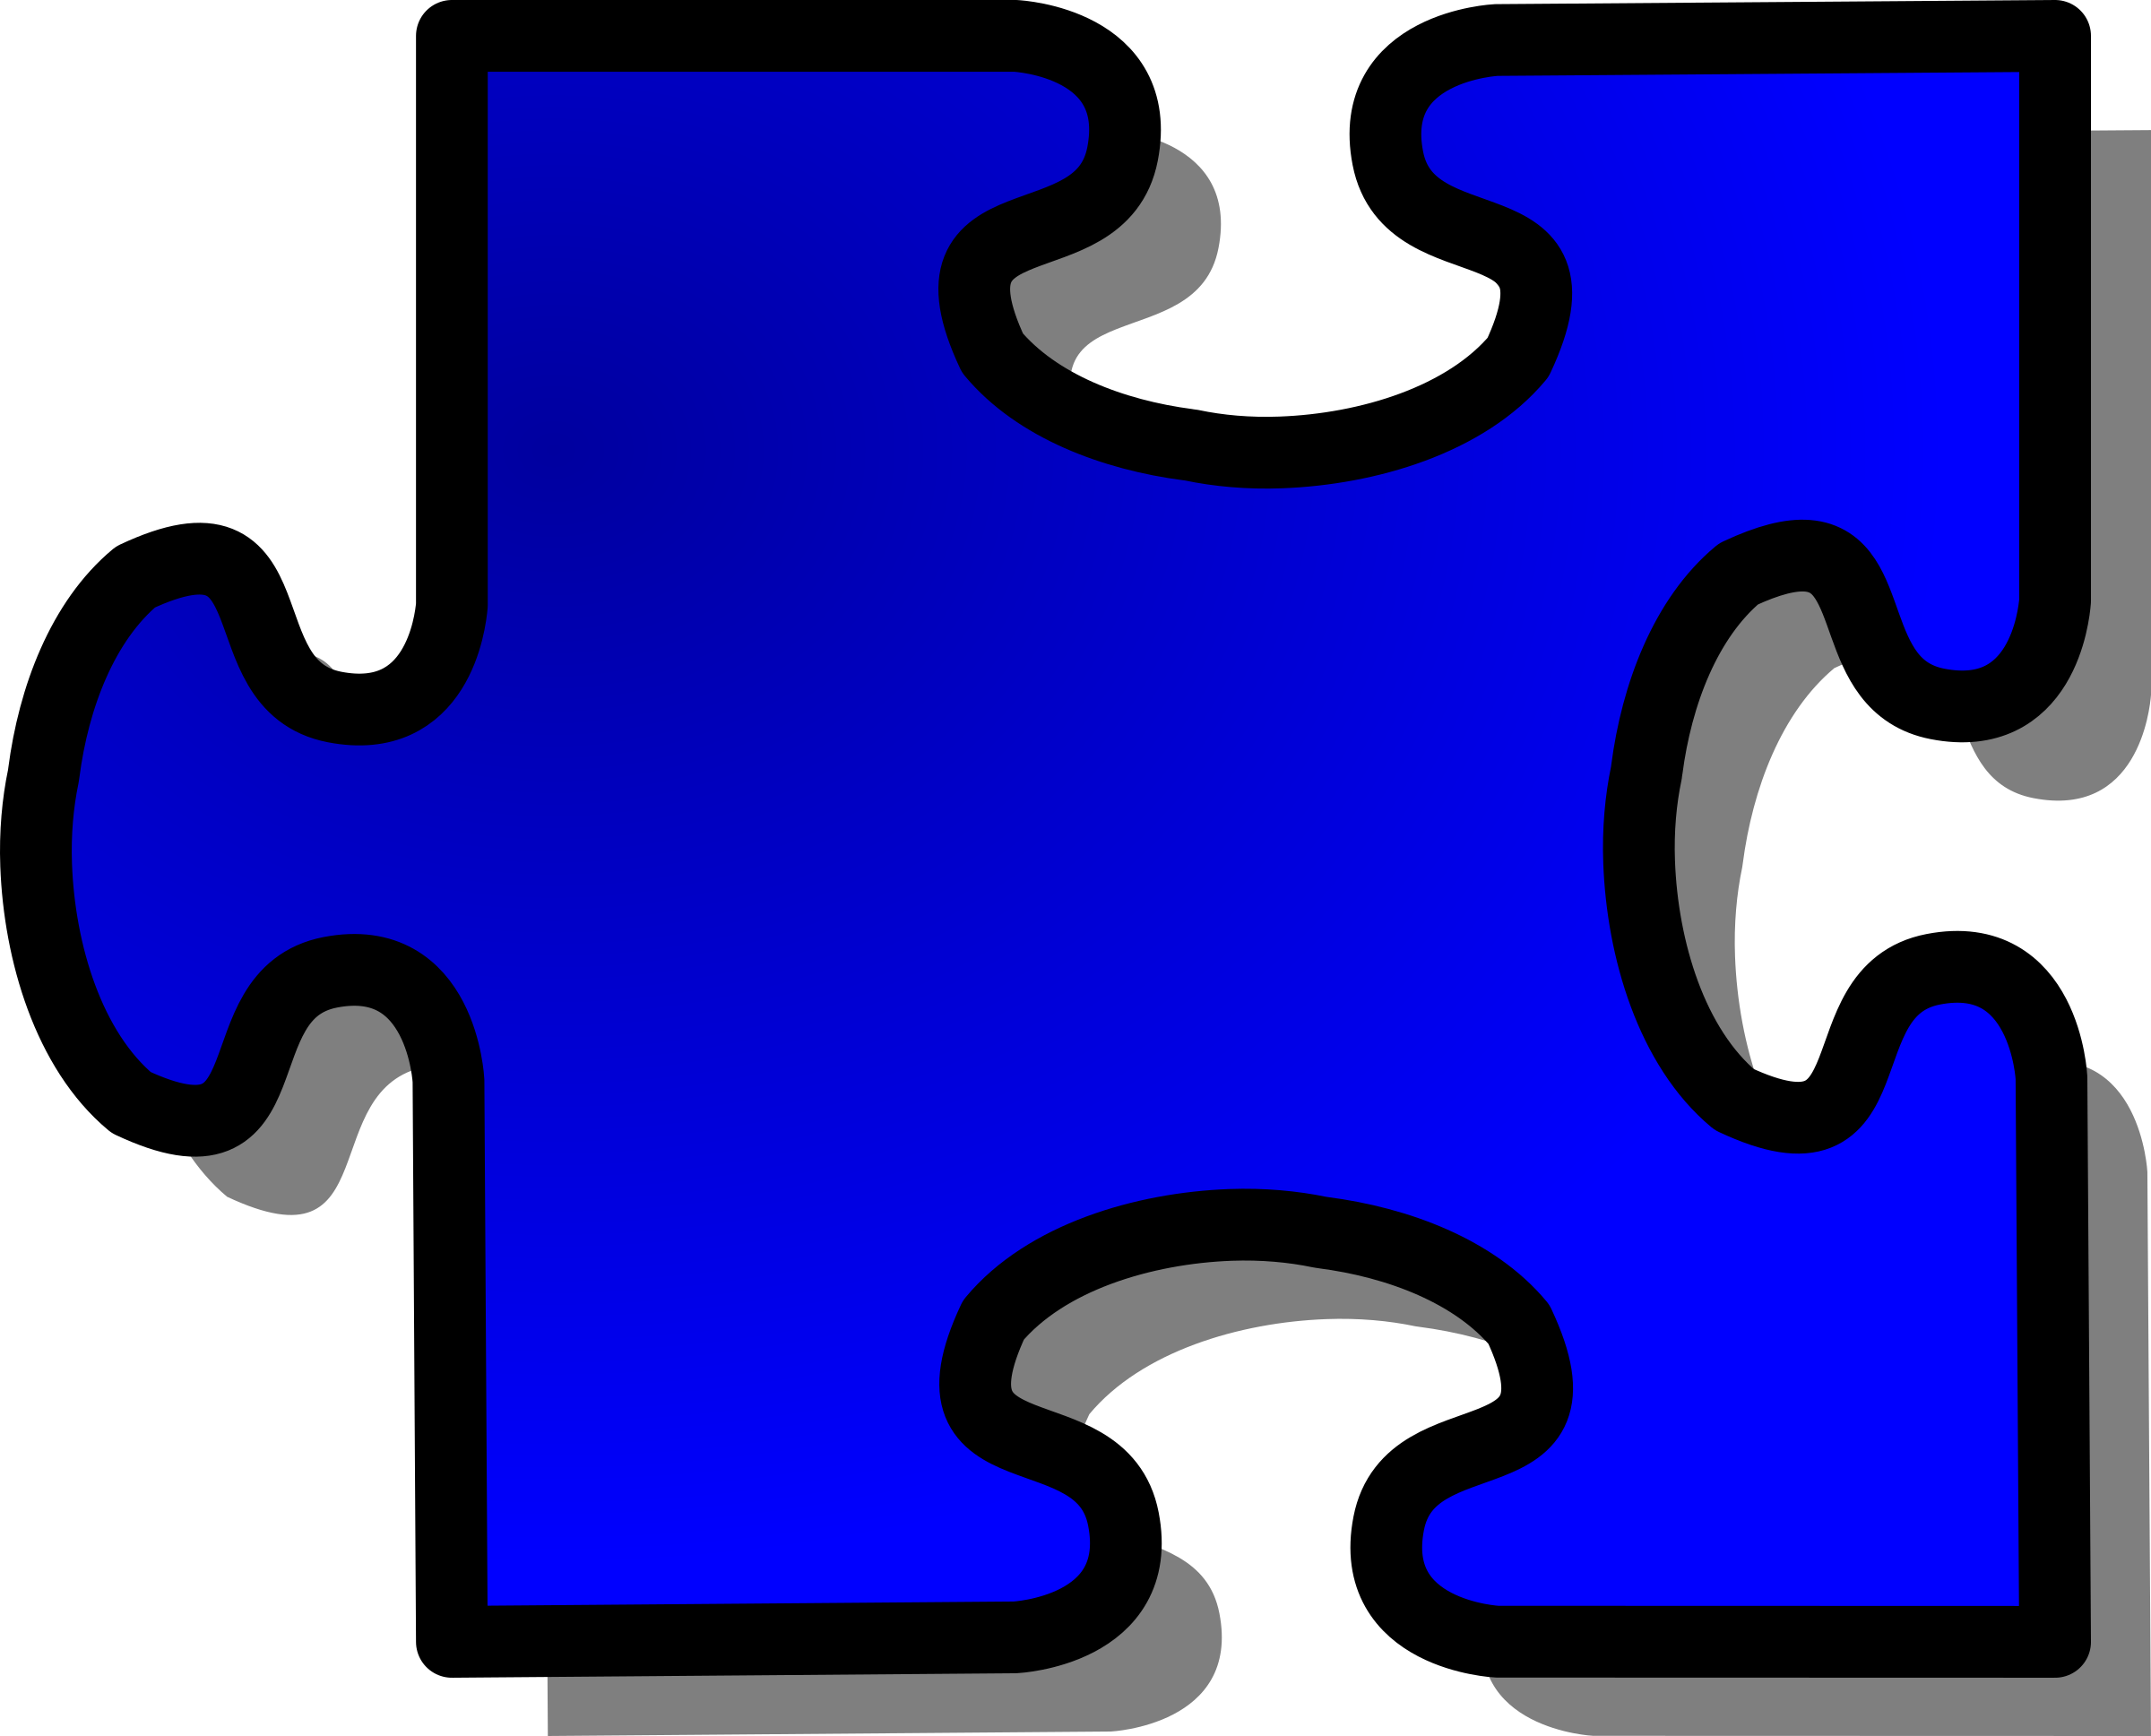 Blue Jigsaw piece 16 by nicubunu